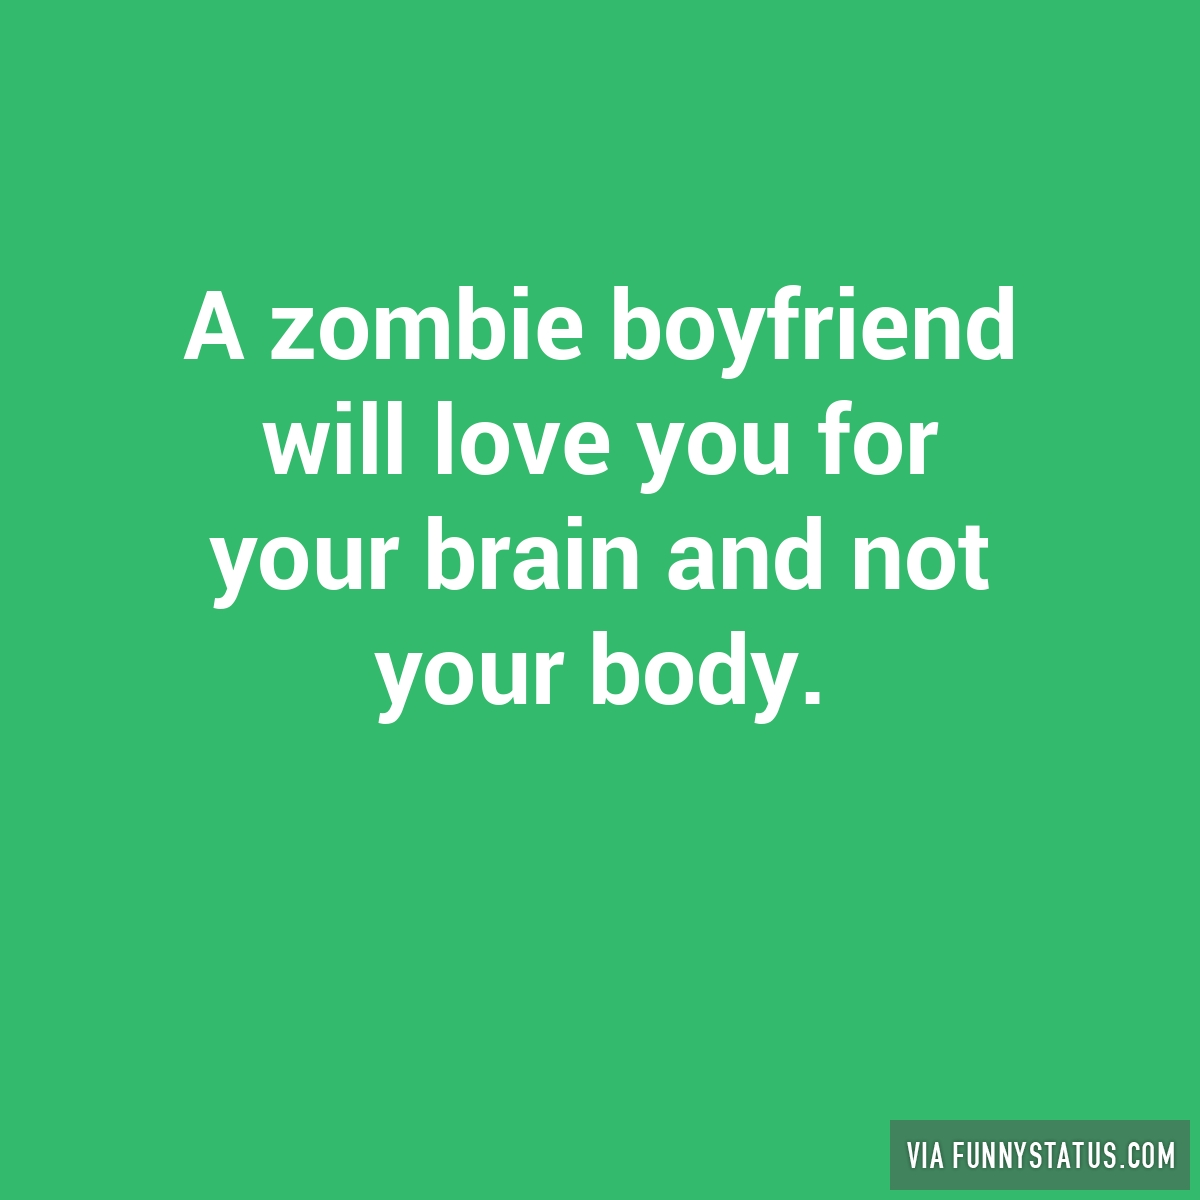 zombie boyfriend will love you for your brain and? - Funny Status